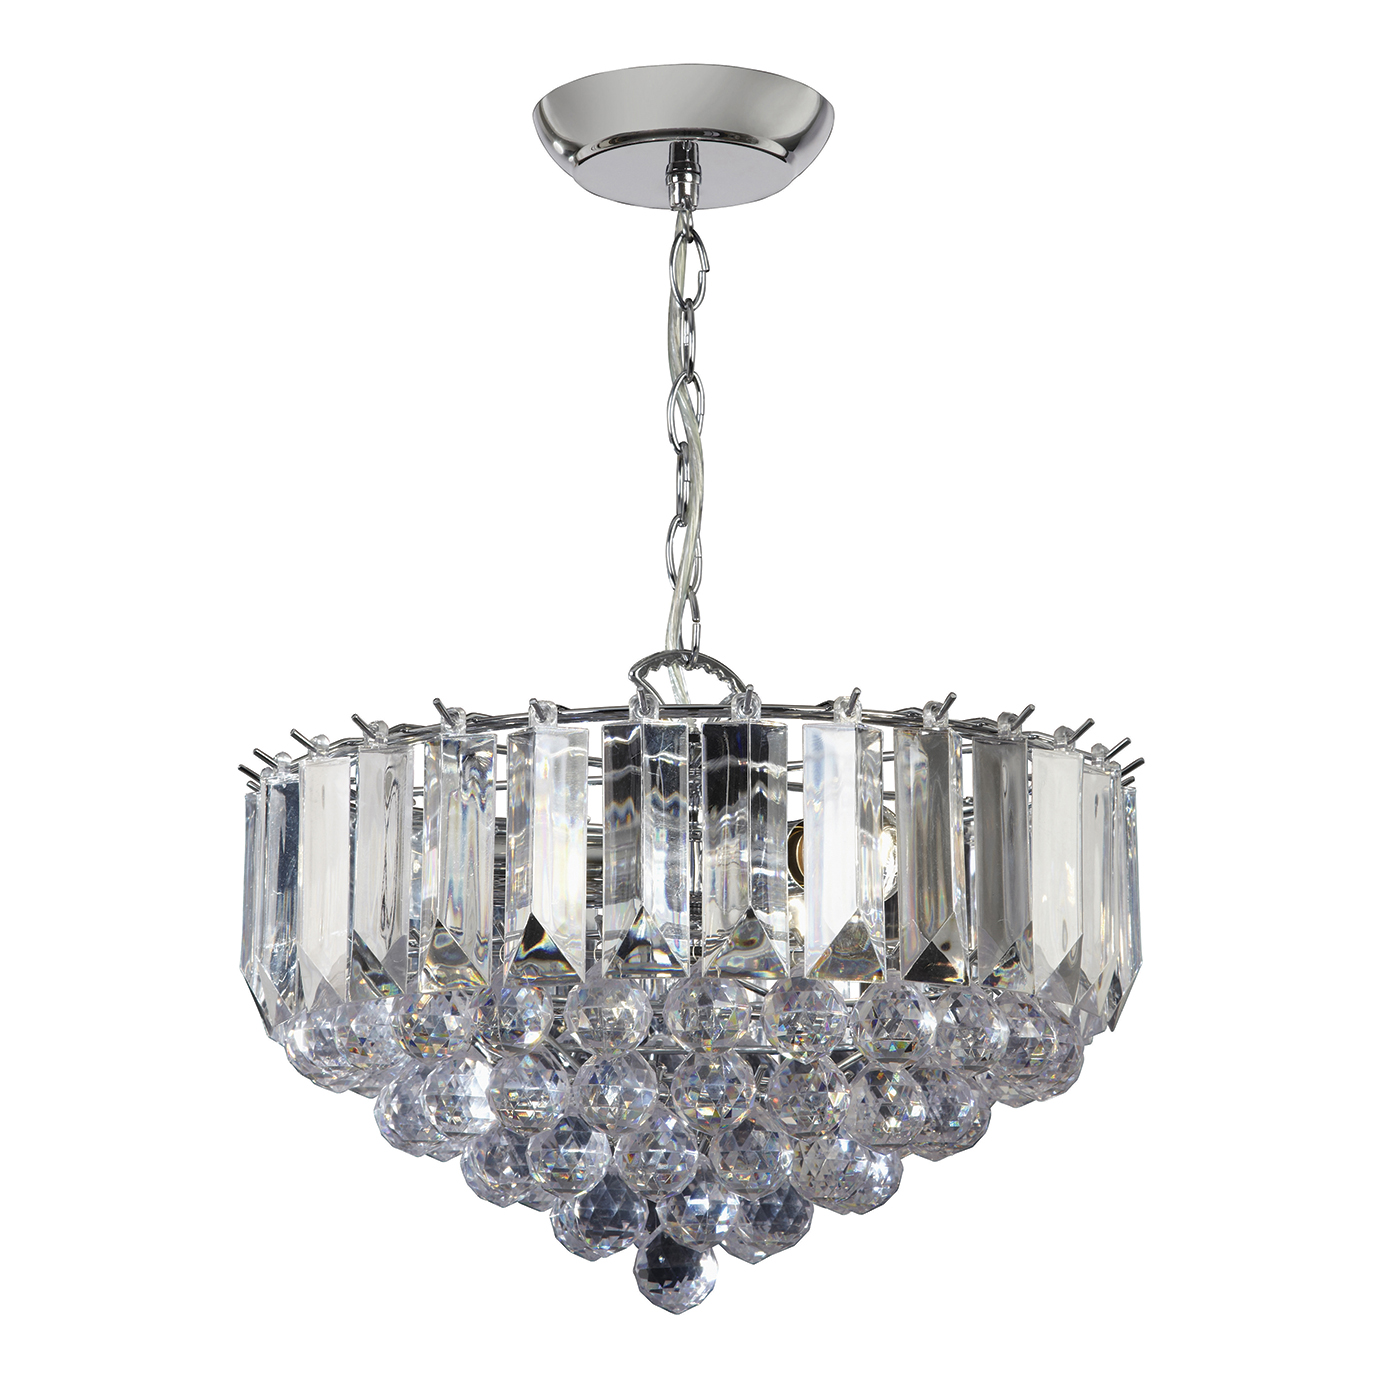 Endon Fargo chandelier 3x 60W Chrome effect plate & clear acrylic